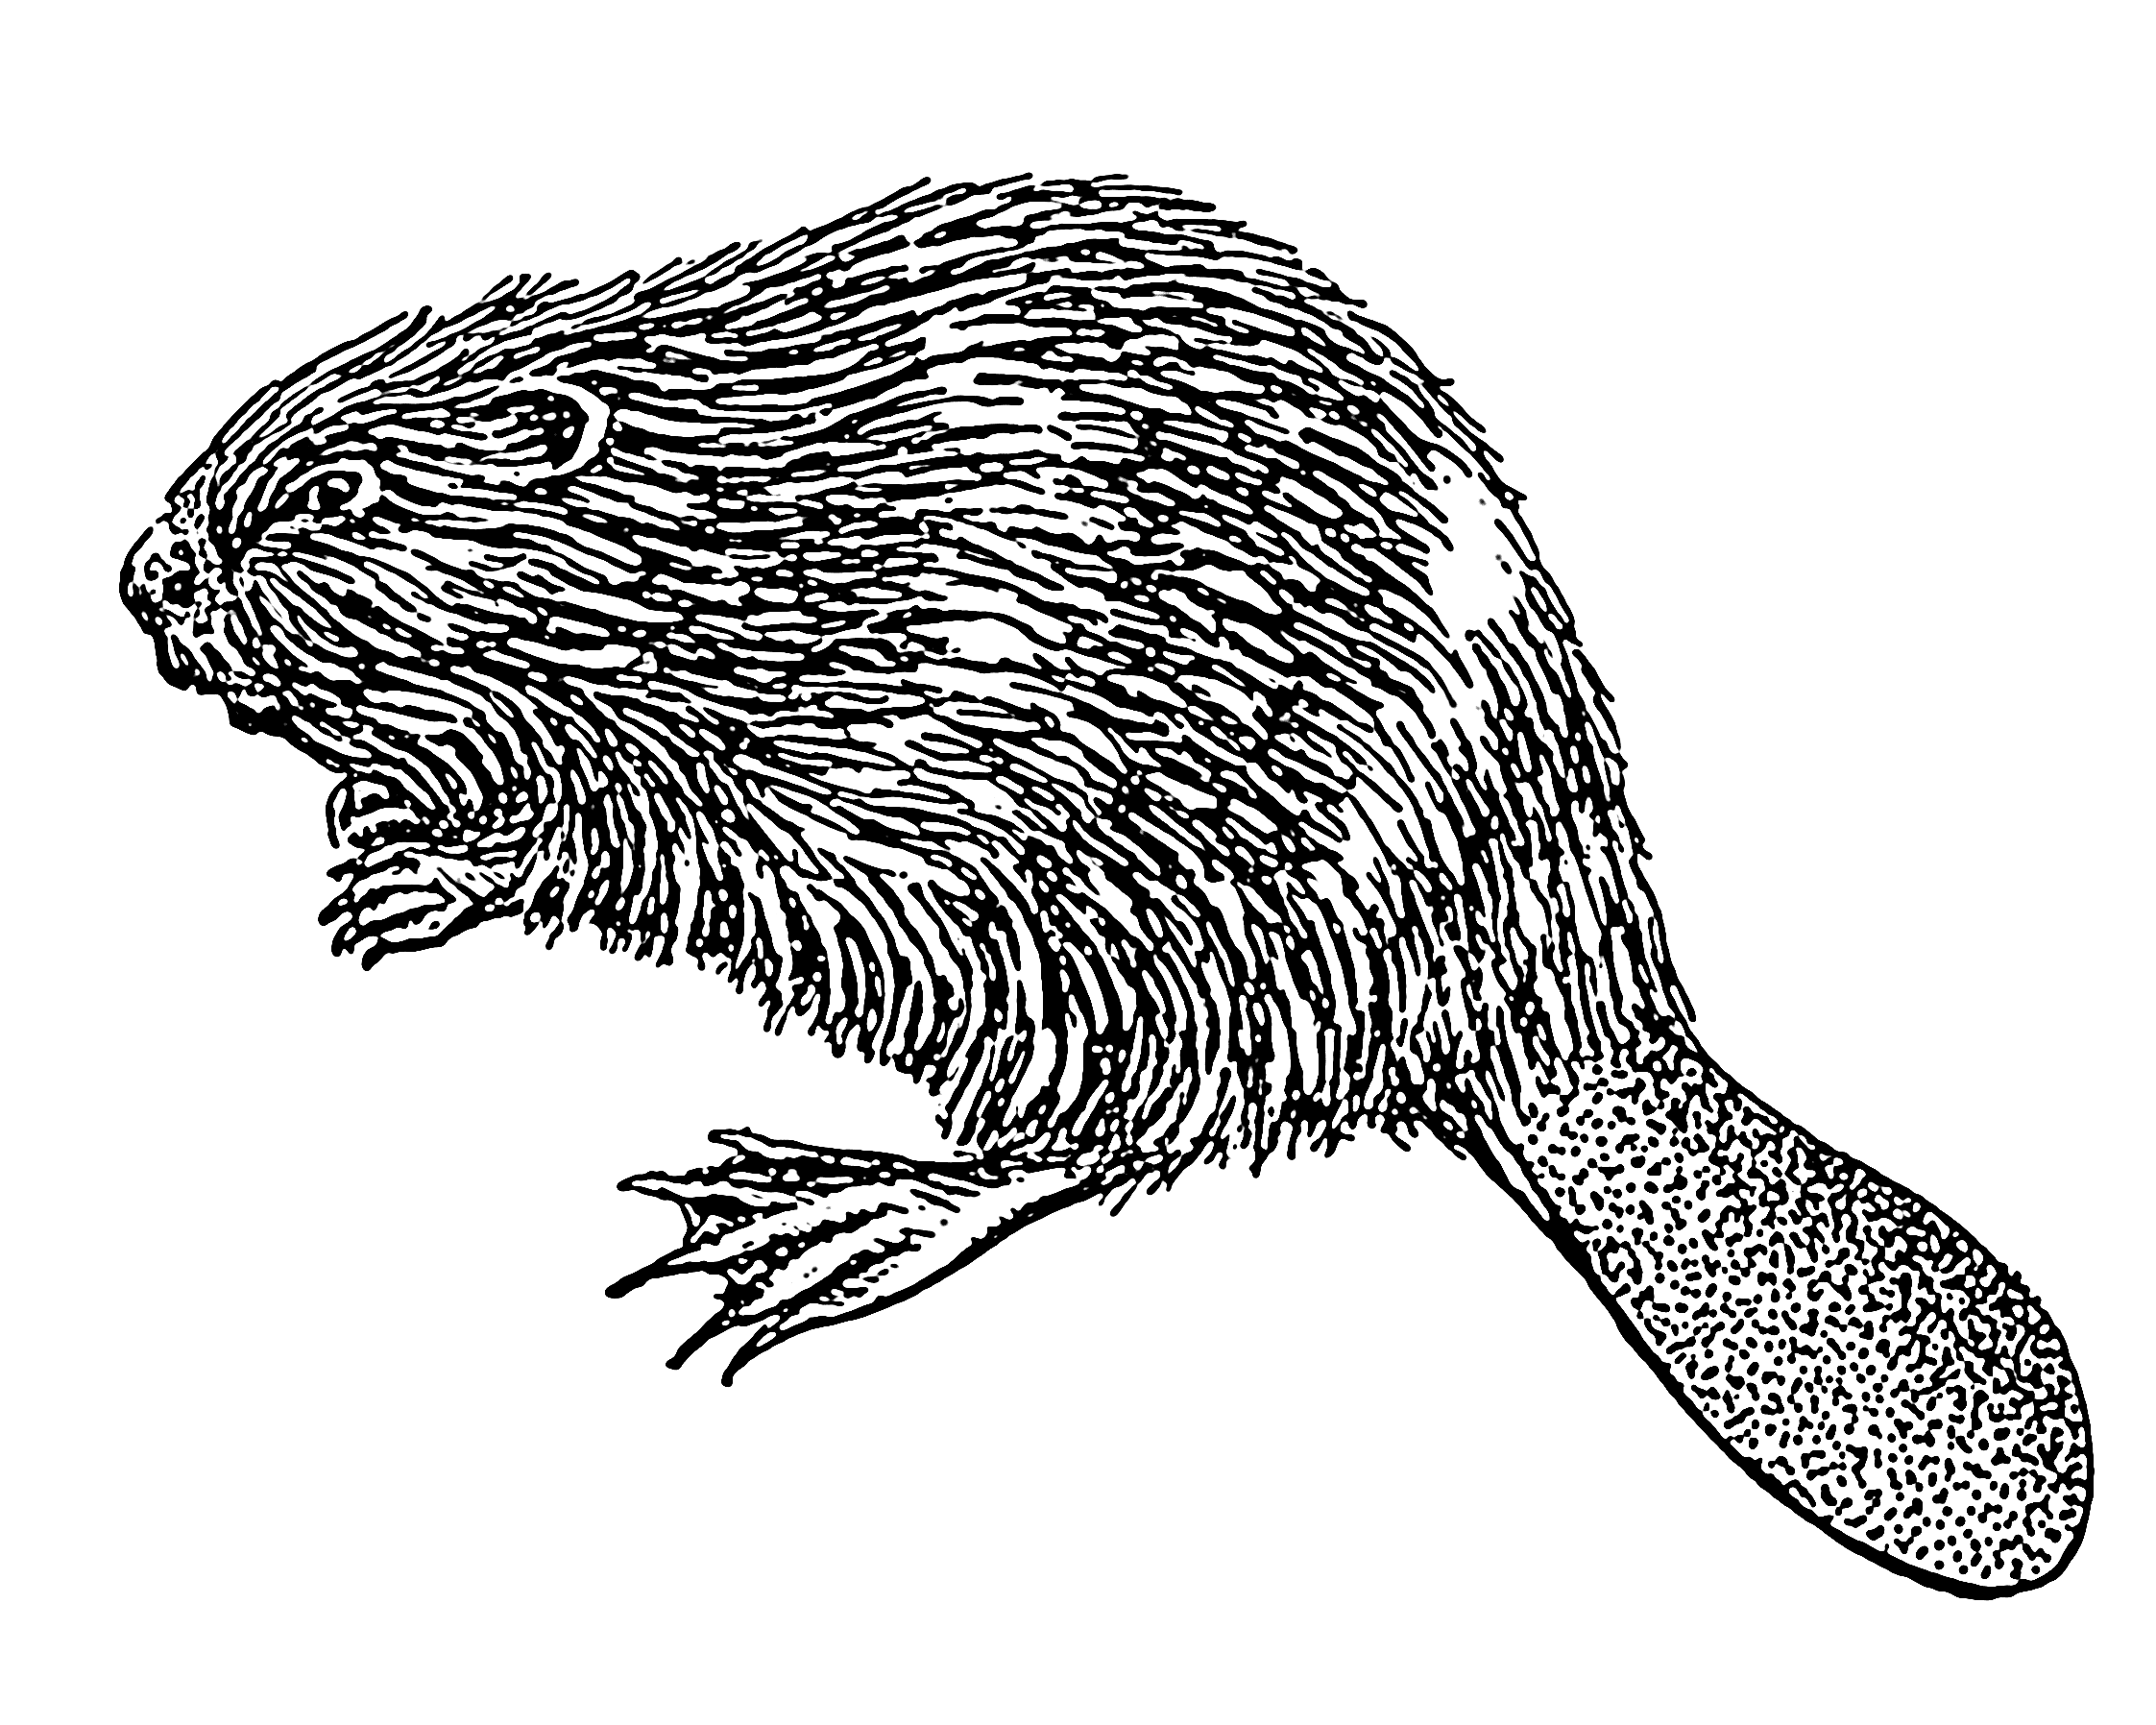 Beaver house clipart png freeuse Beaver Drawing at GetDrawings.com | Free for personal use Beaver ... png freeuse